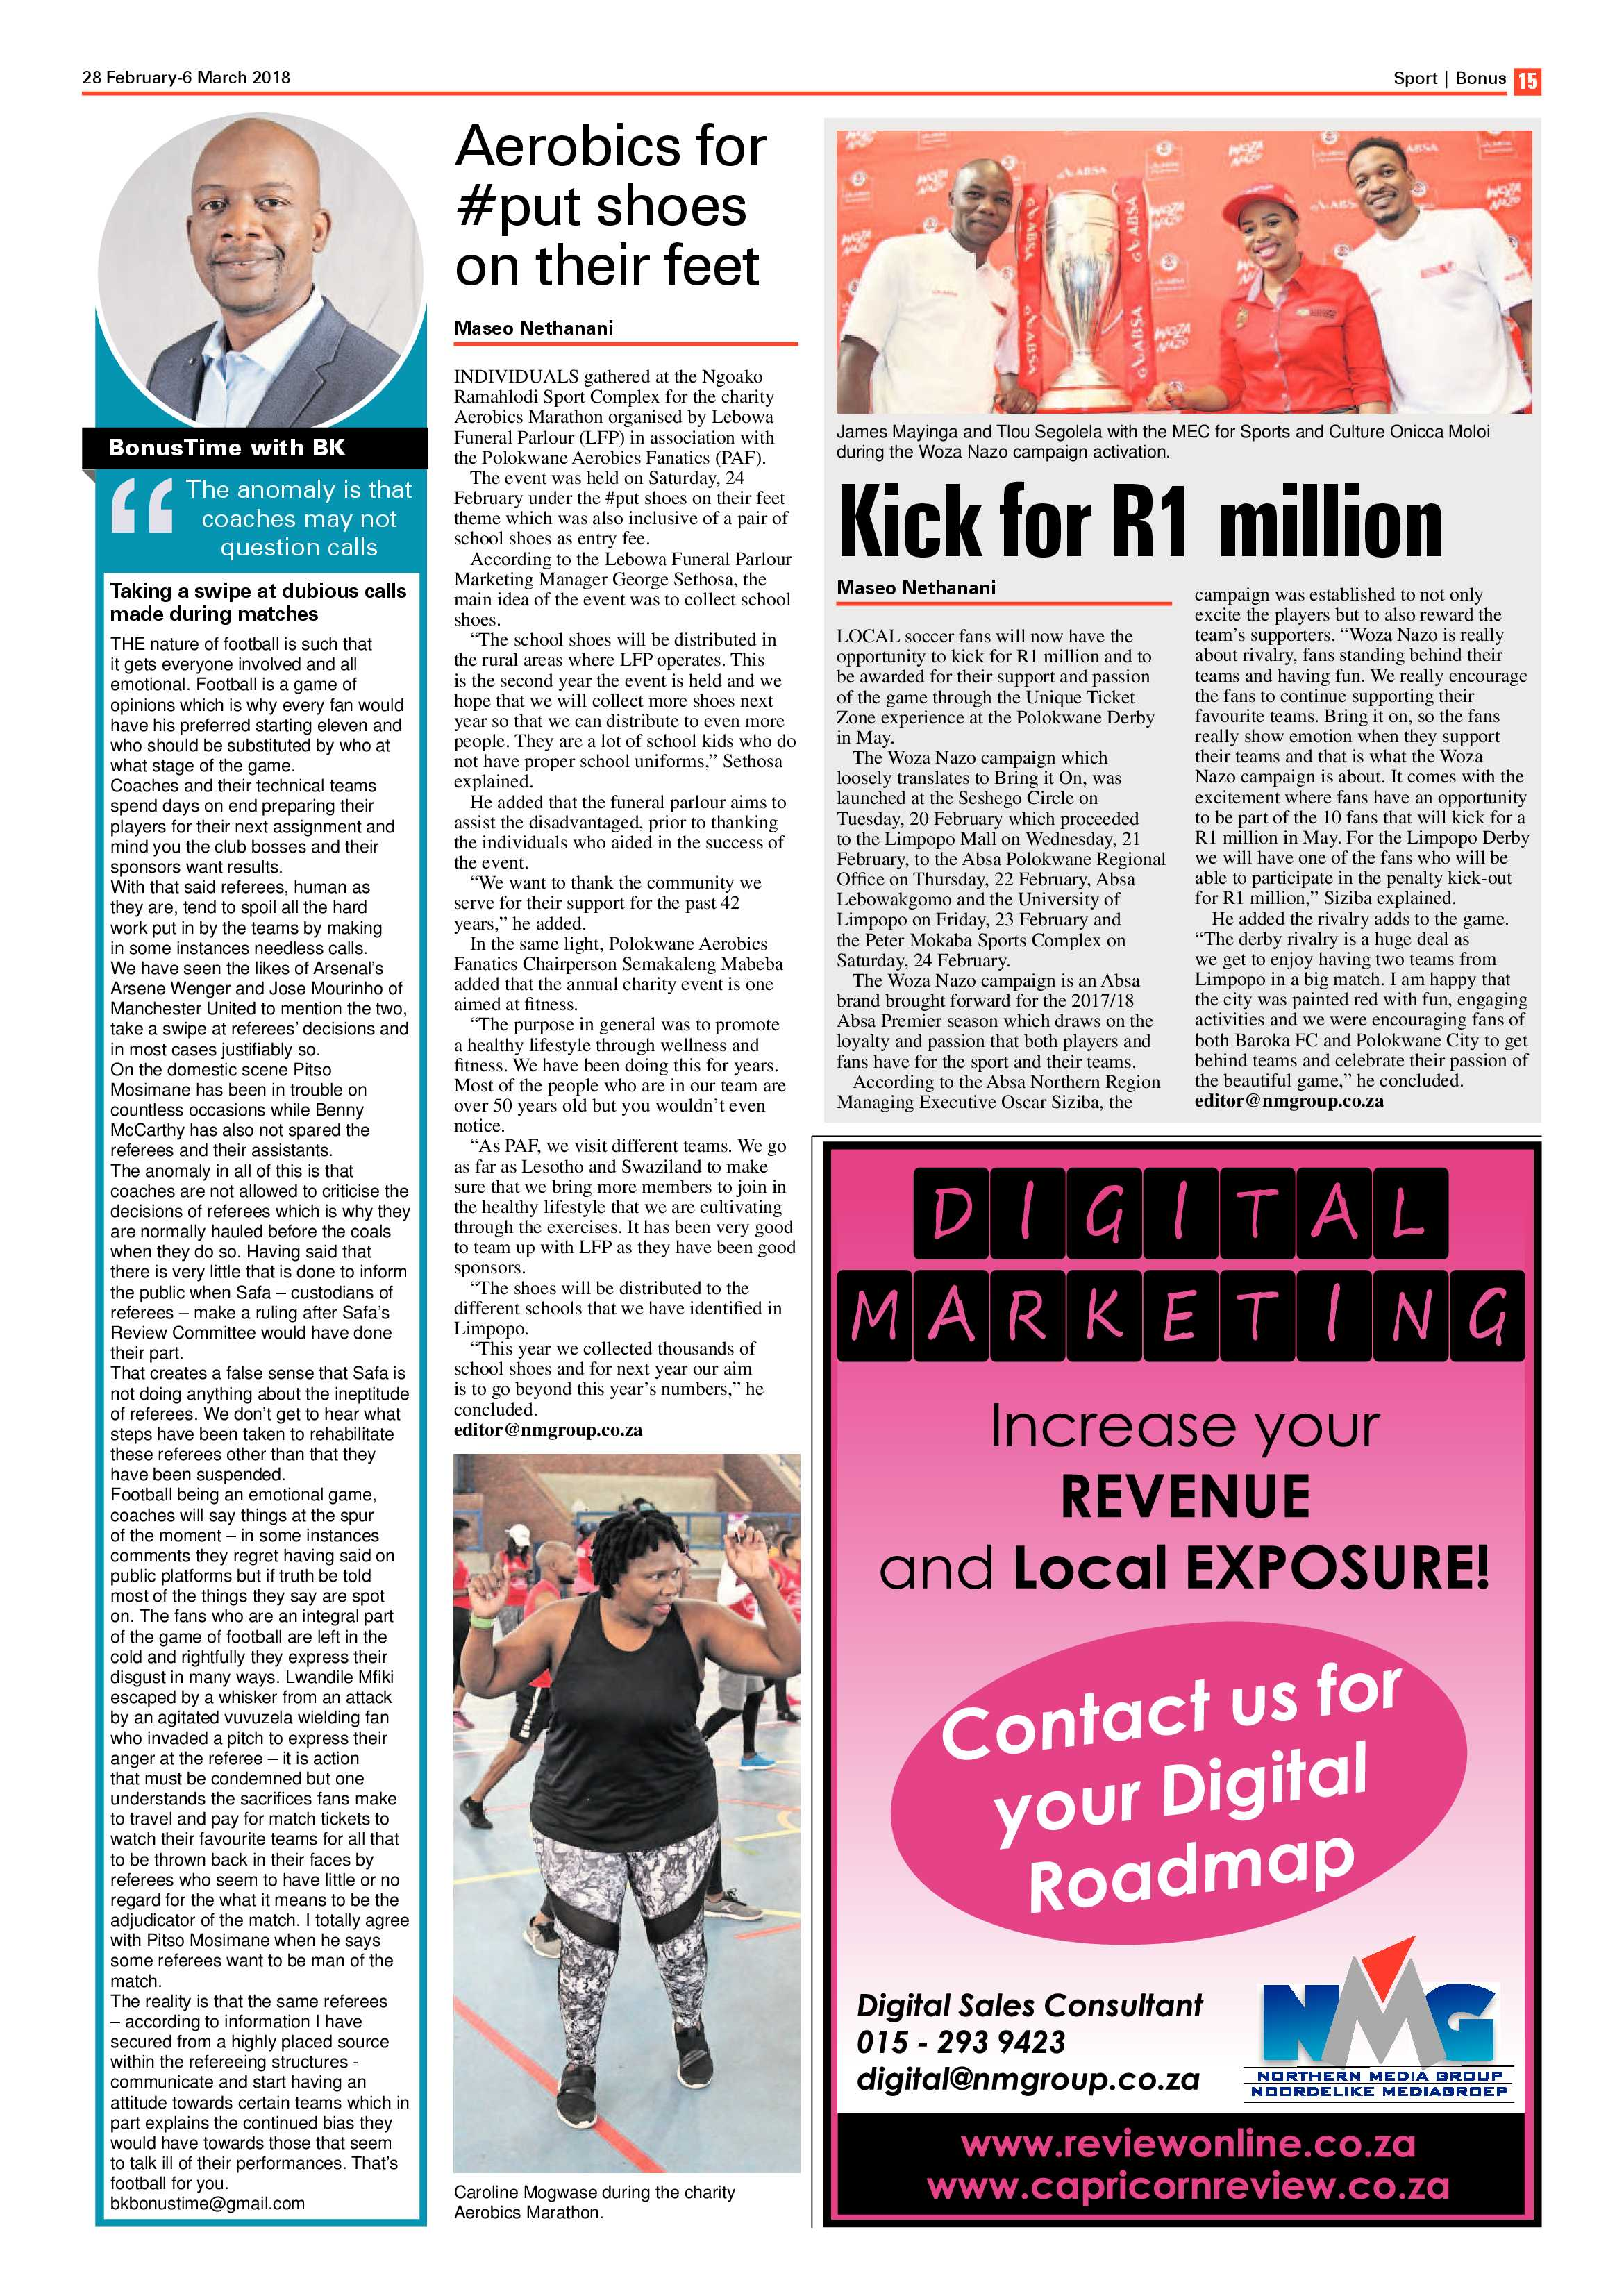 review-bonus-28-february-2018-epapers-page-15